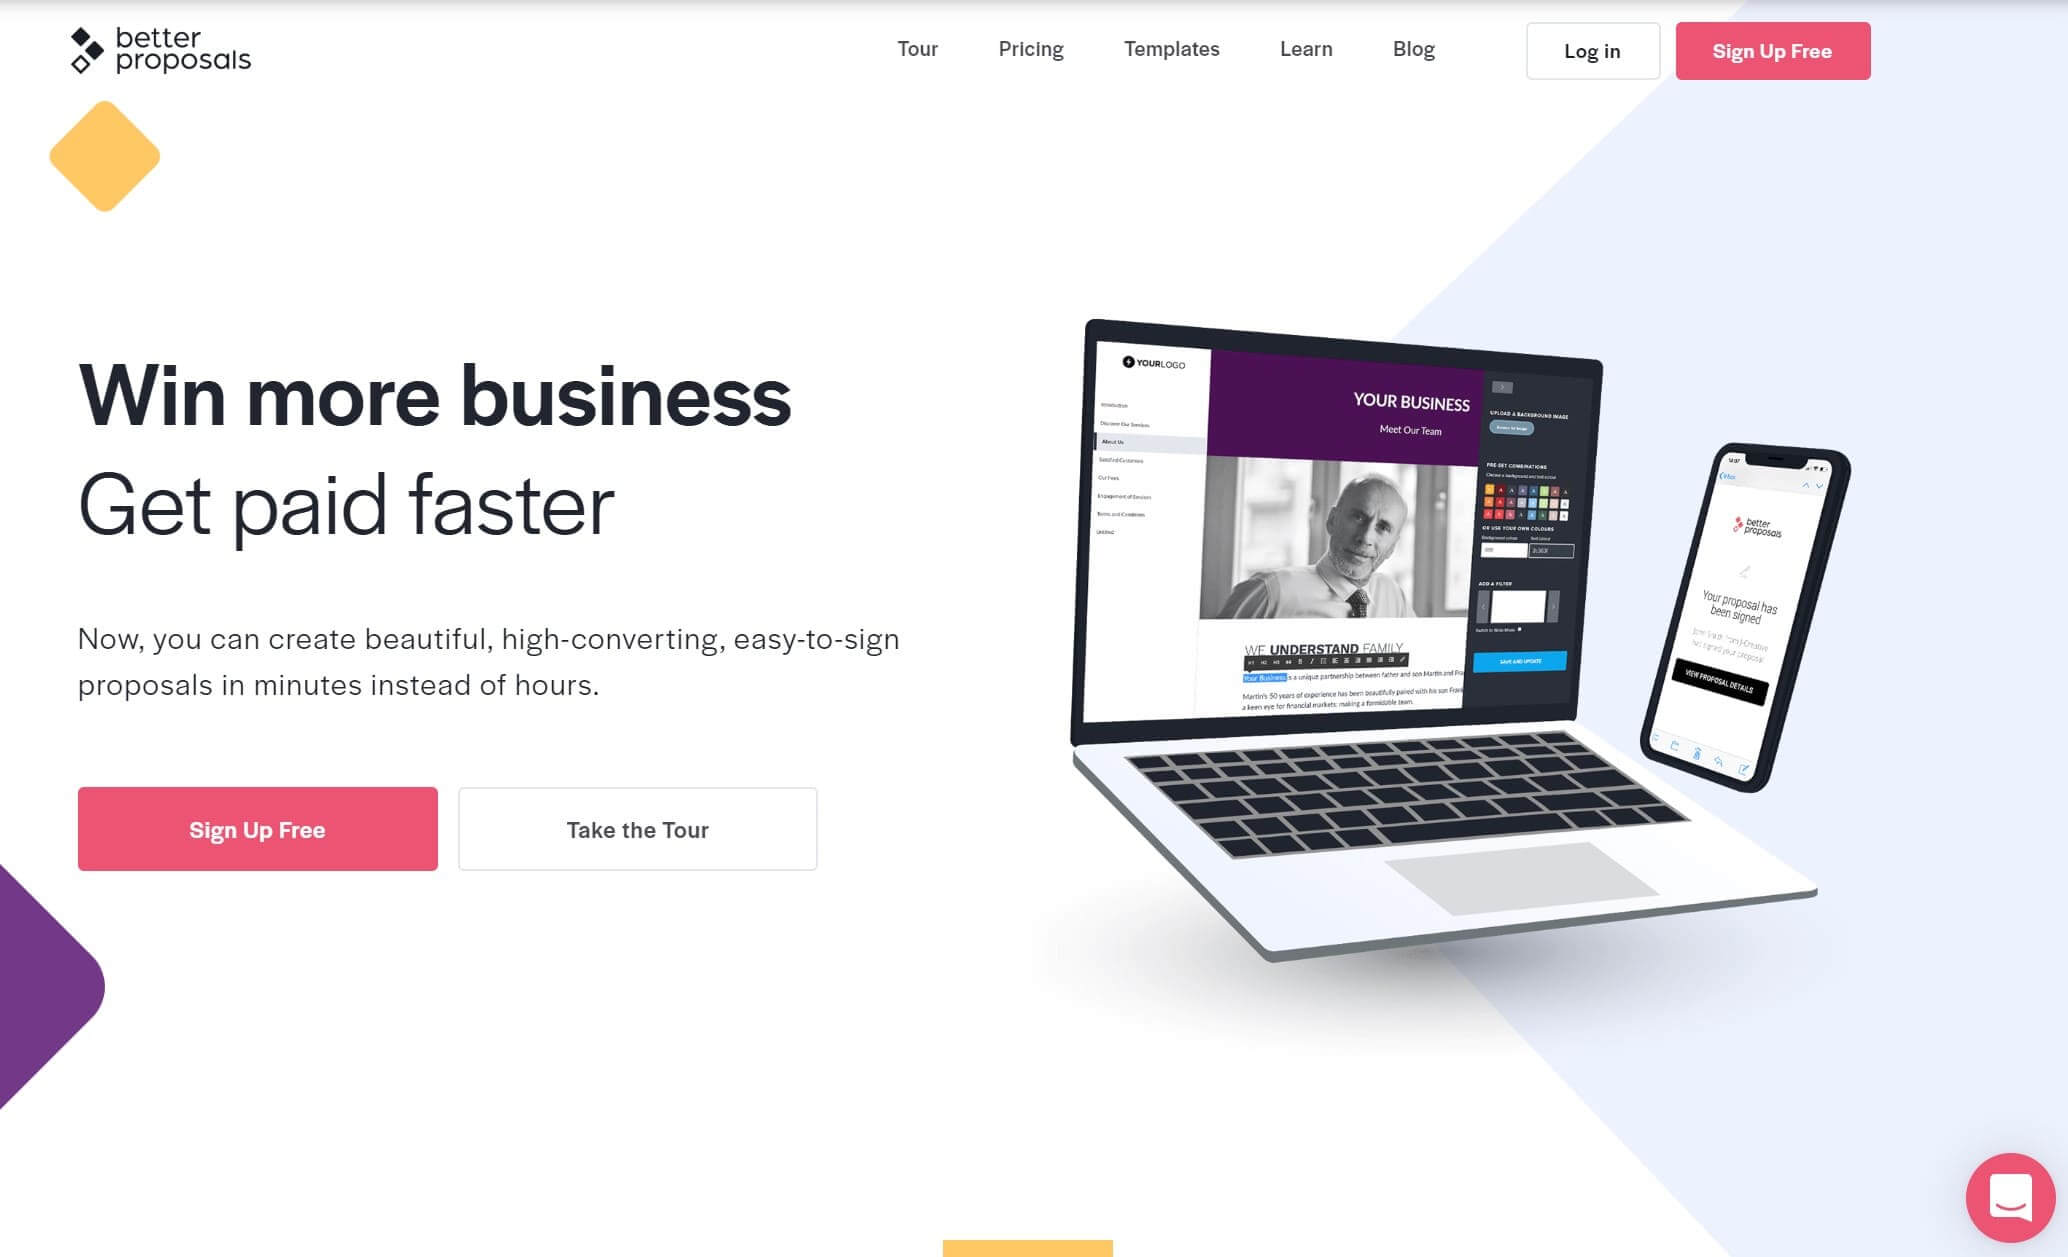 BetterProposals website